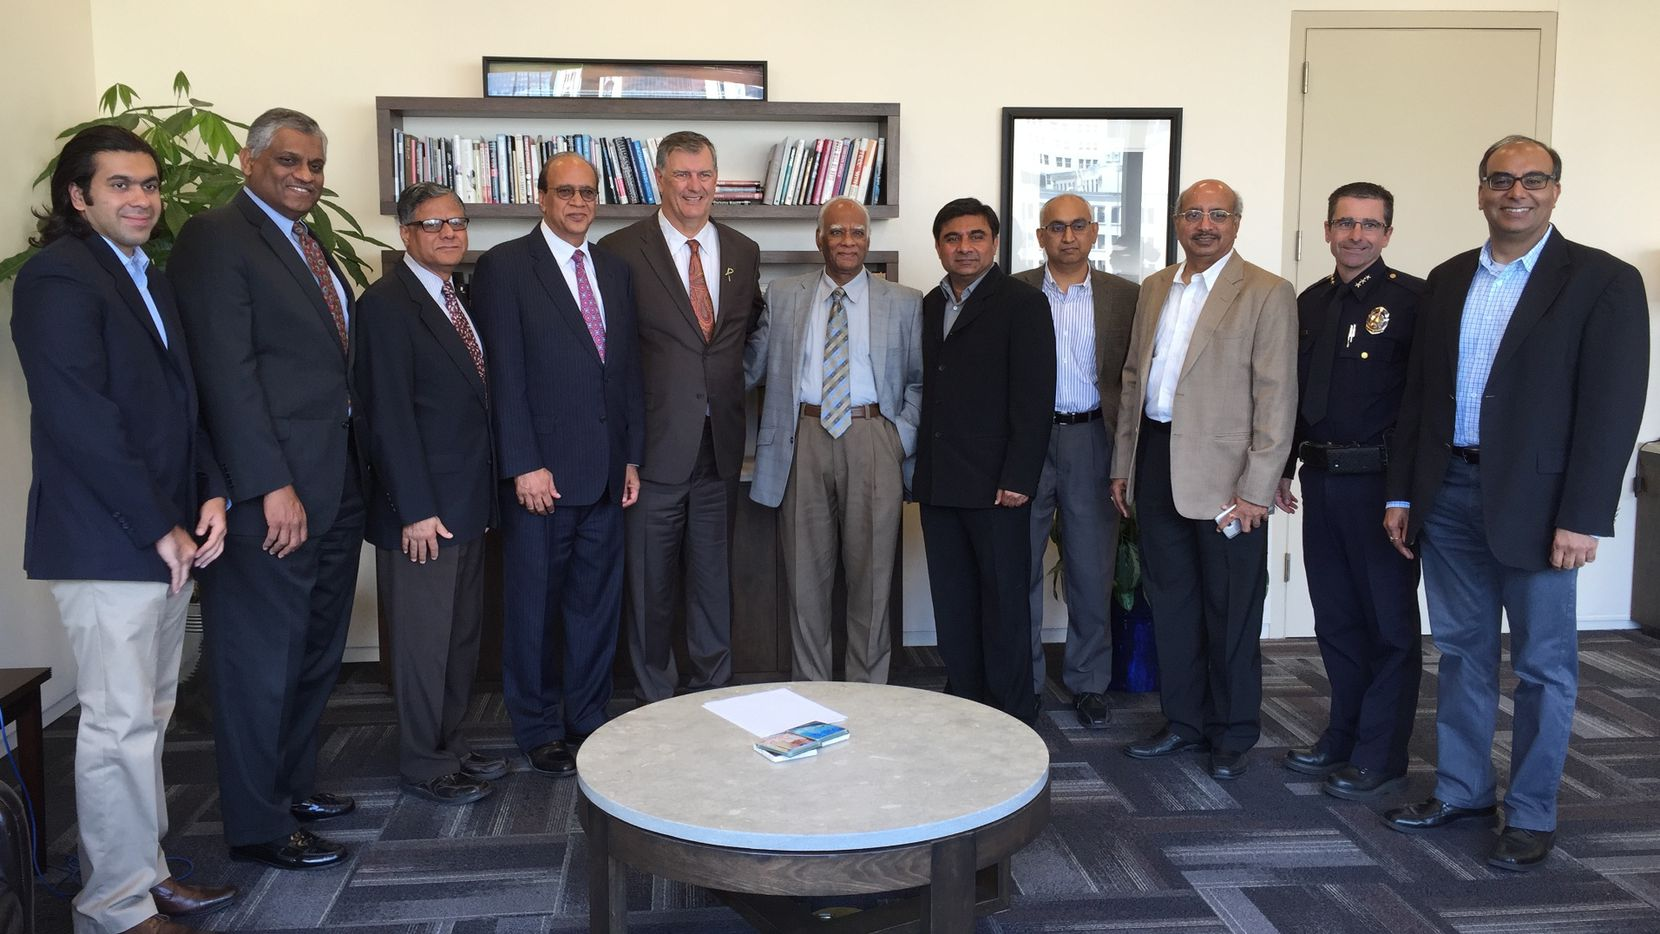 Local Indian-American leaders joined Dallas Mayor Mike Rawlings (fifth from left) and Executive Assistant Police Chief David Pughes (second from right) to present a $60,000 gift to the Assist the Officer Foundation.